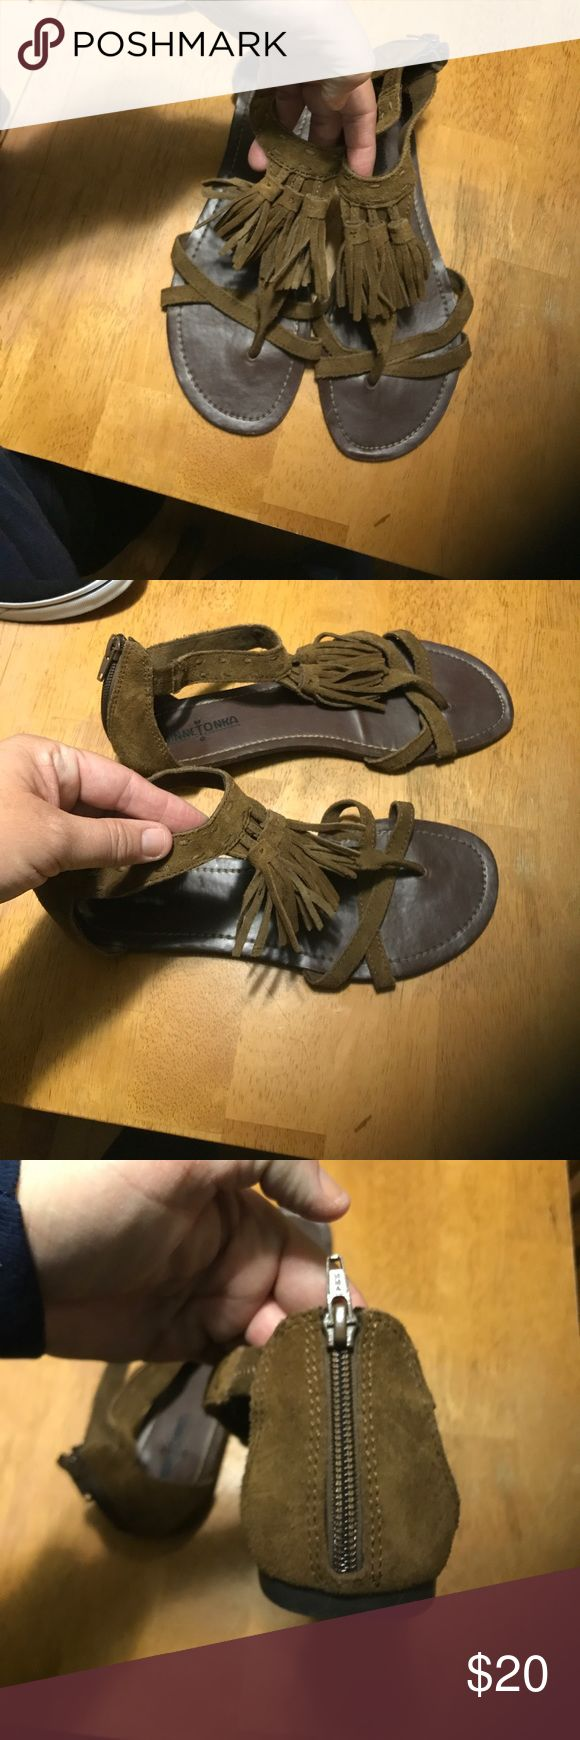 SUEDE MINNETONKA SANDALS Ladies size 9. Genuine suede leather. Brown. Excellent used condition. 1 owner, smoke free home. Minnetonka Shoes Sandals